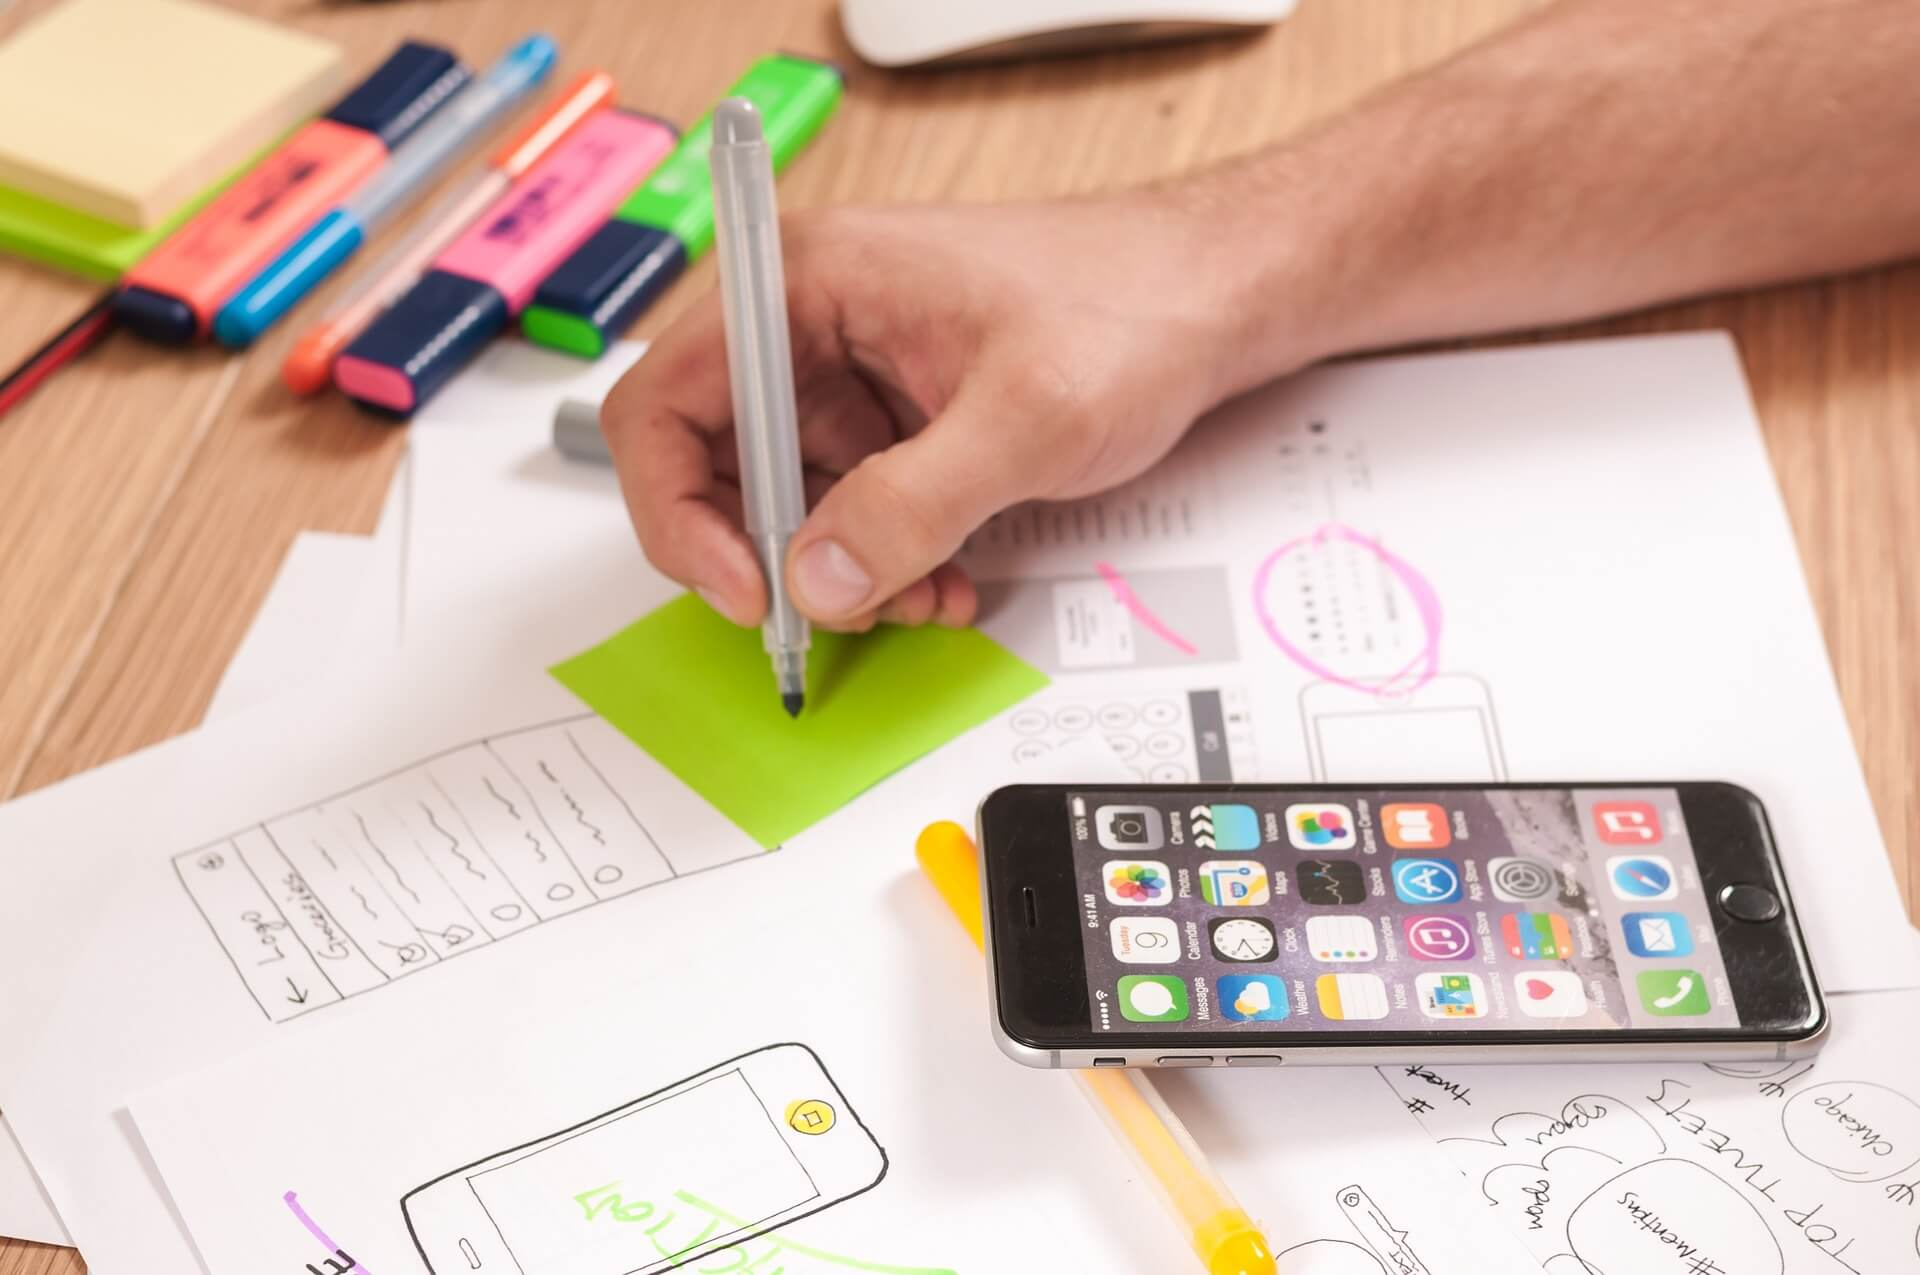 mobile application planning